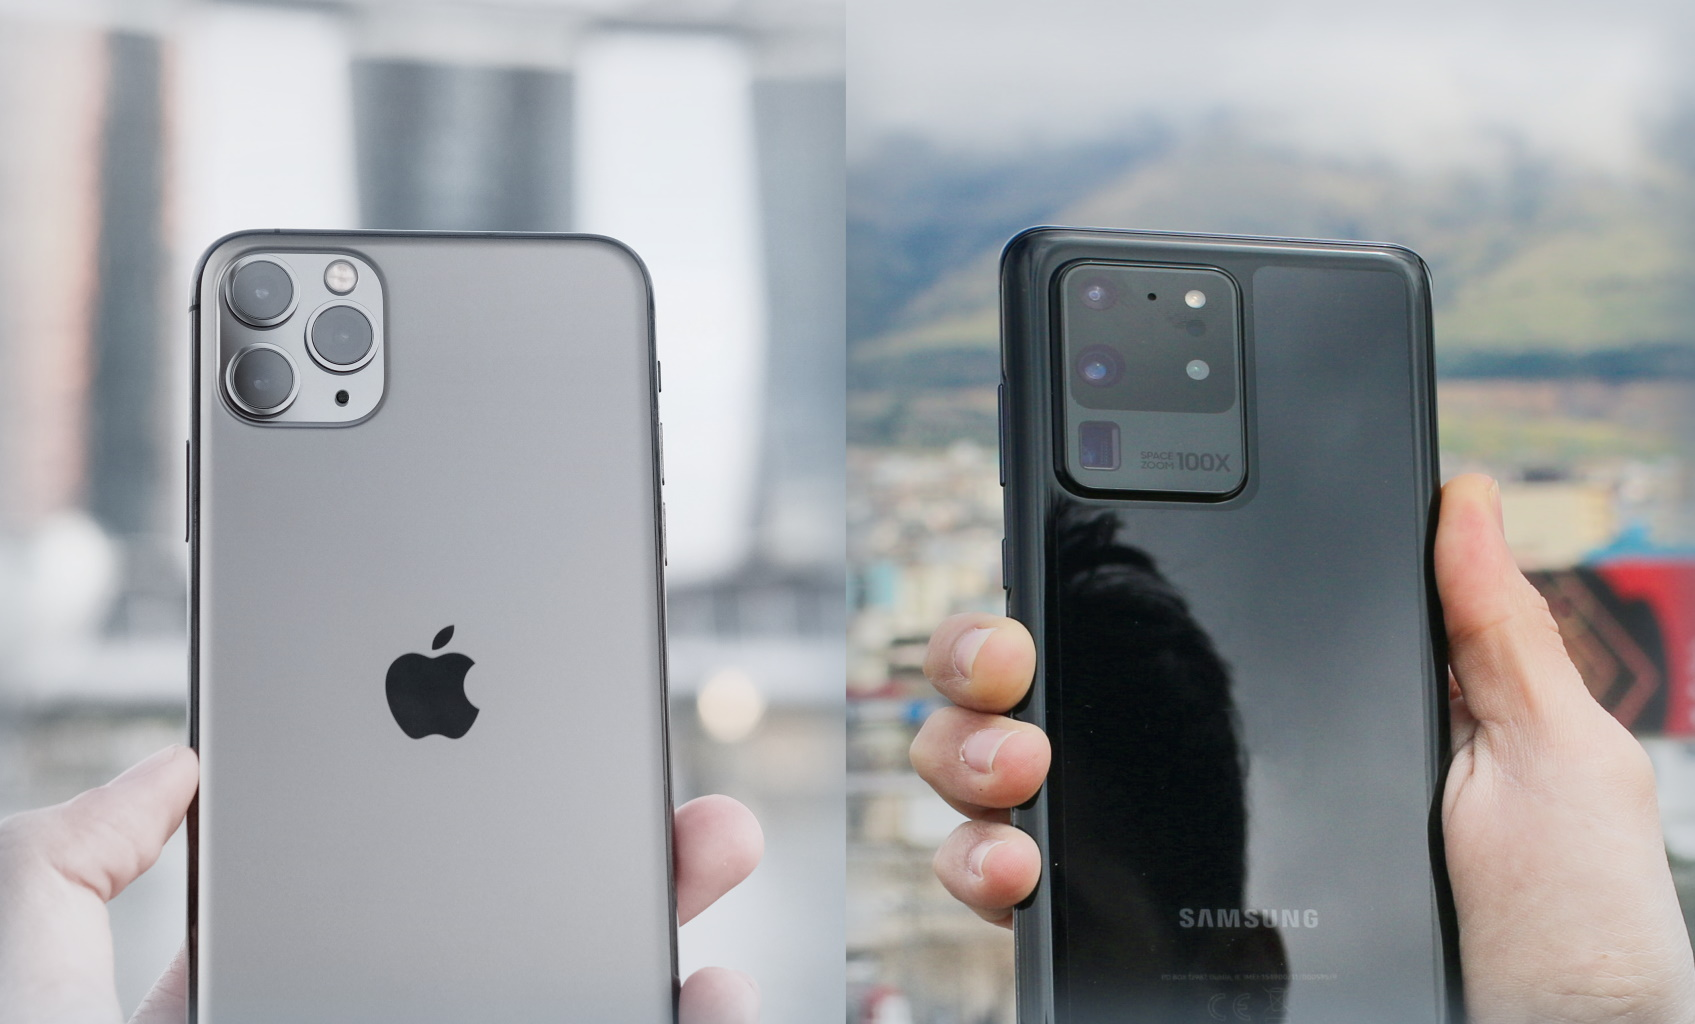 Galaxy S20 Ultra vs. iPhone 11 Pro camera comparison: Which phone is best?